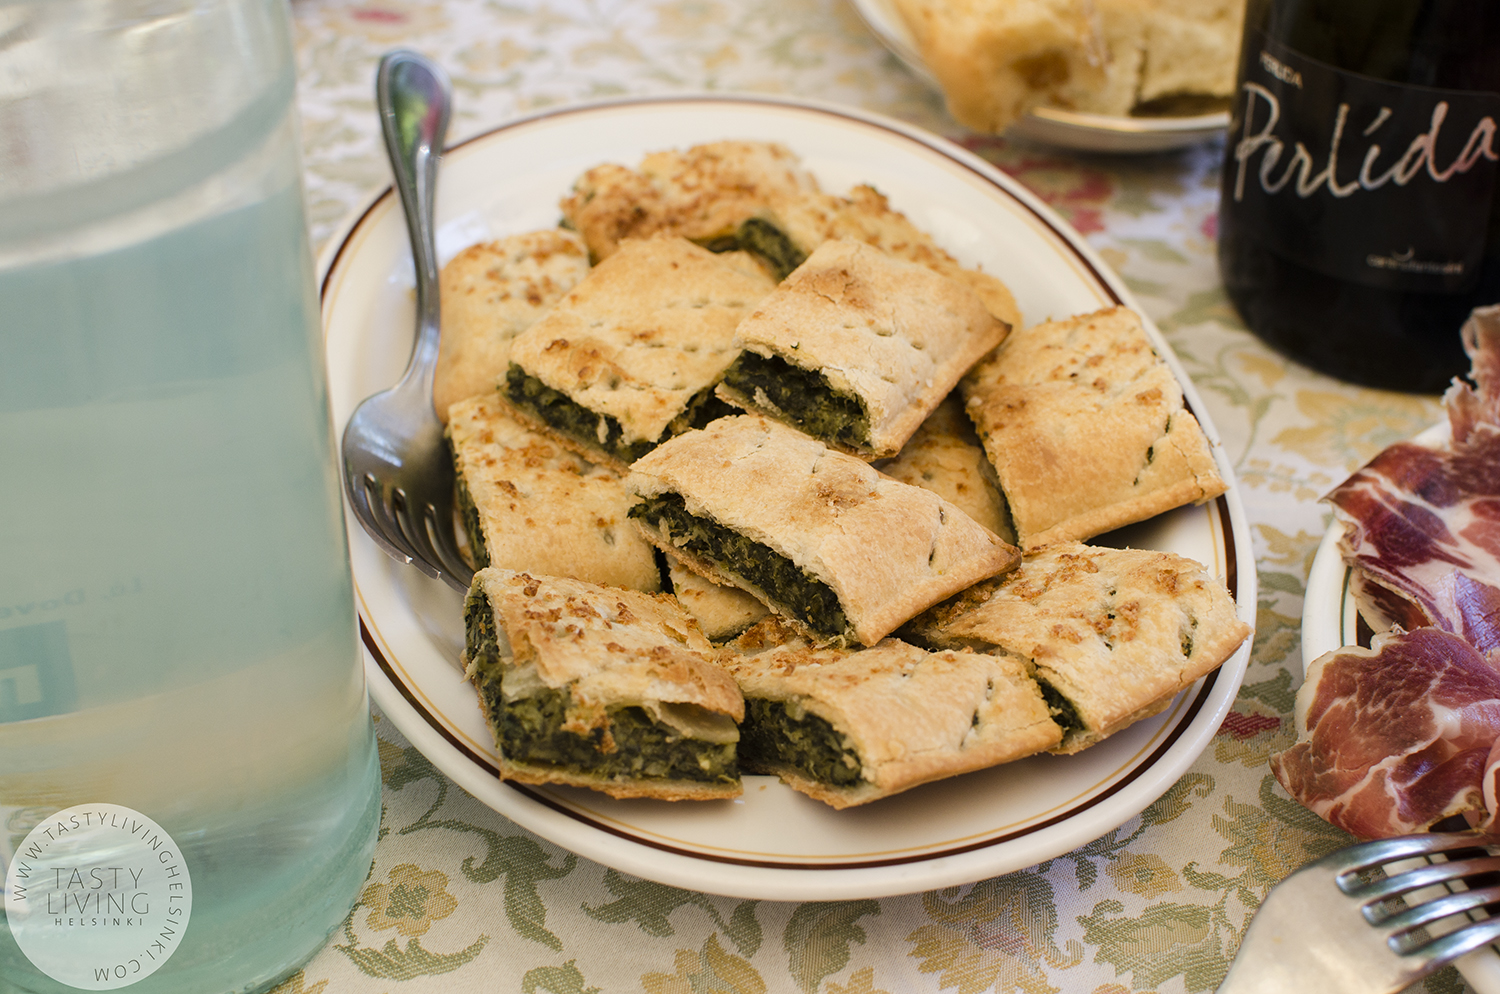 Erbazzone is one of my favorites in the Italian cuisine. It's a spinach pie.